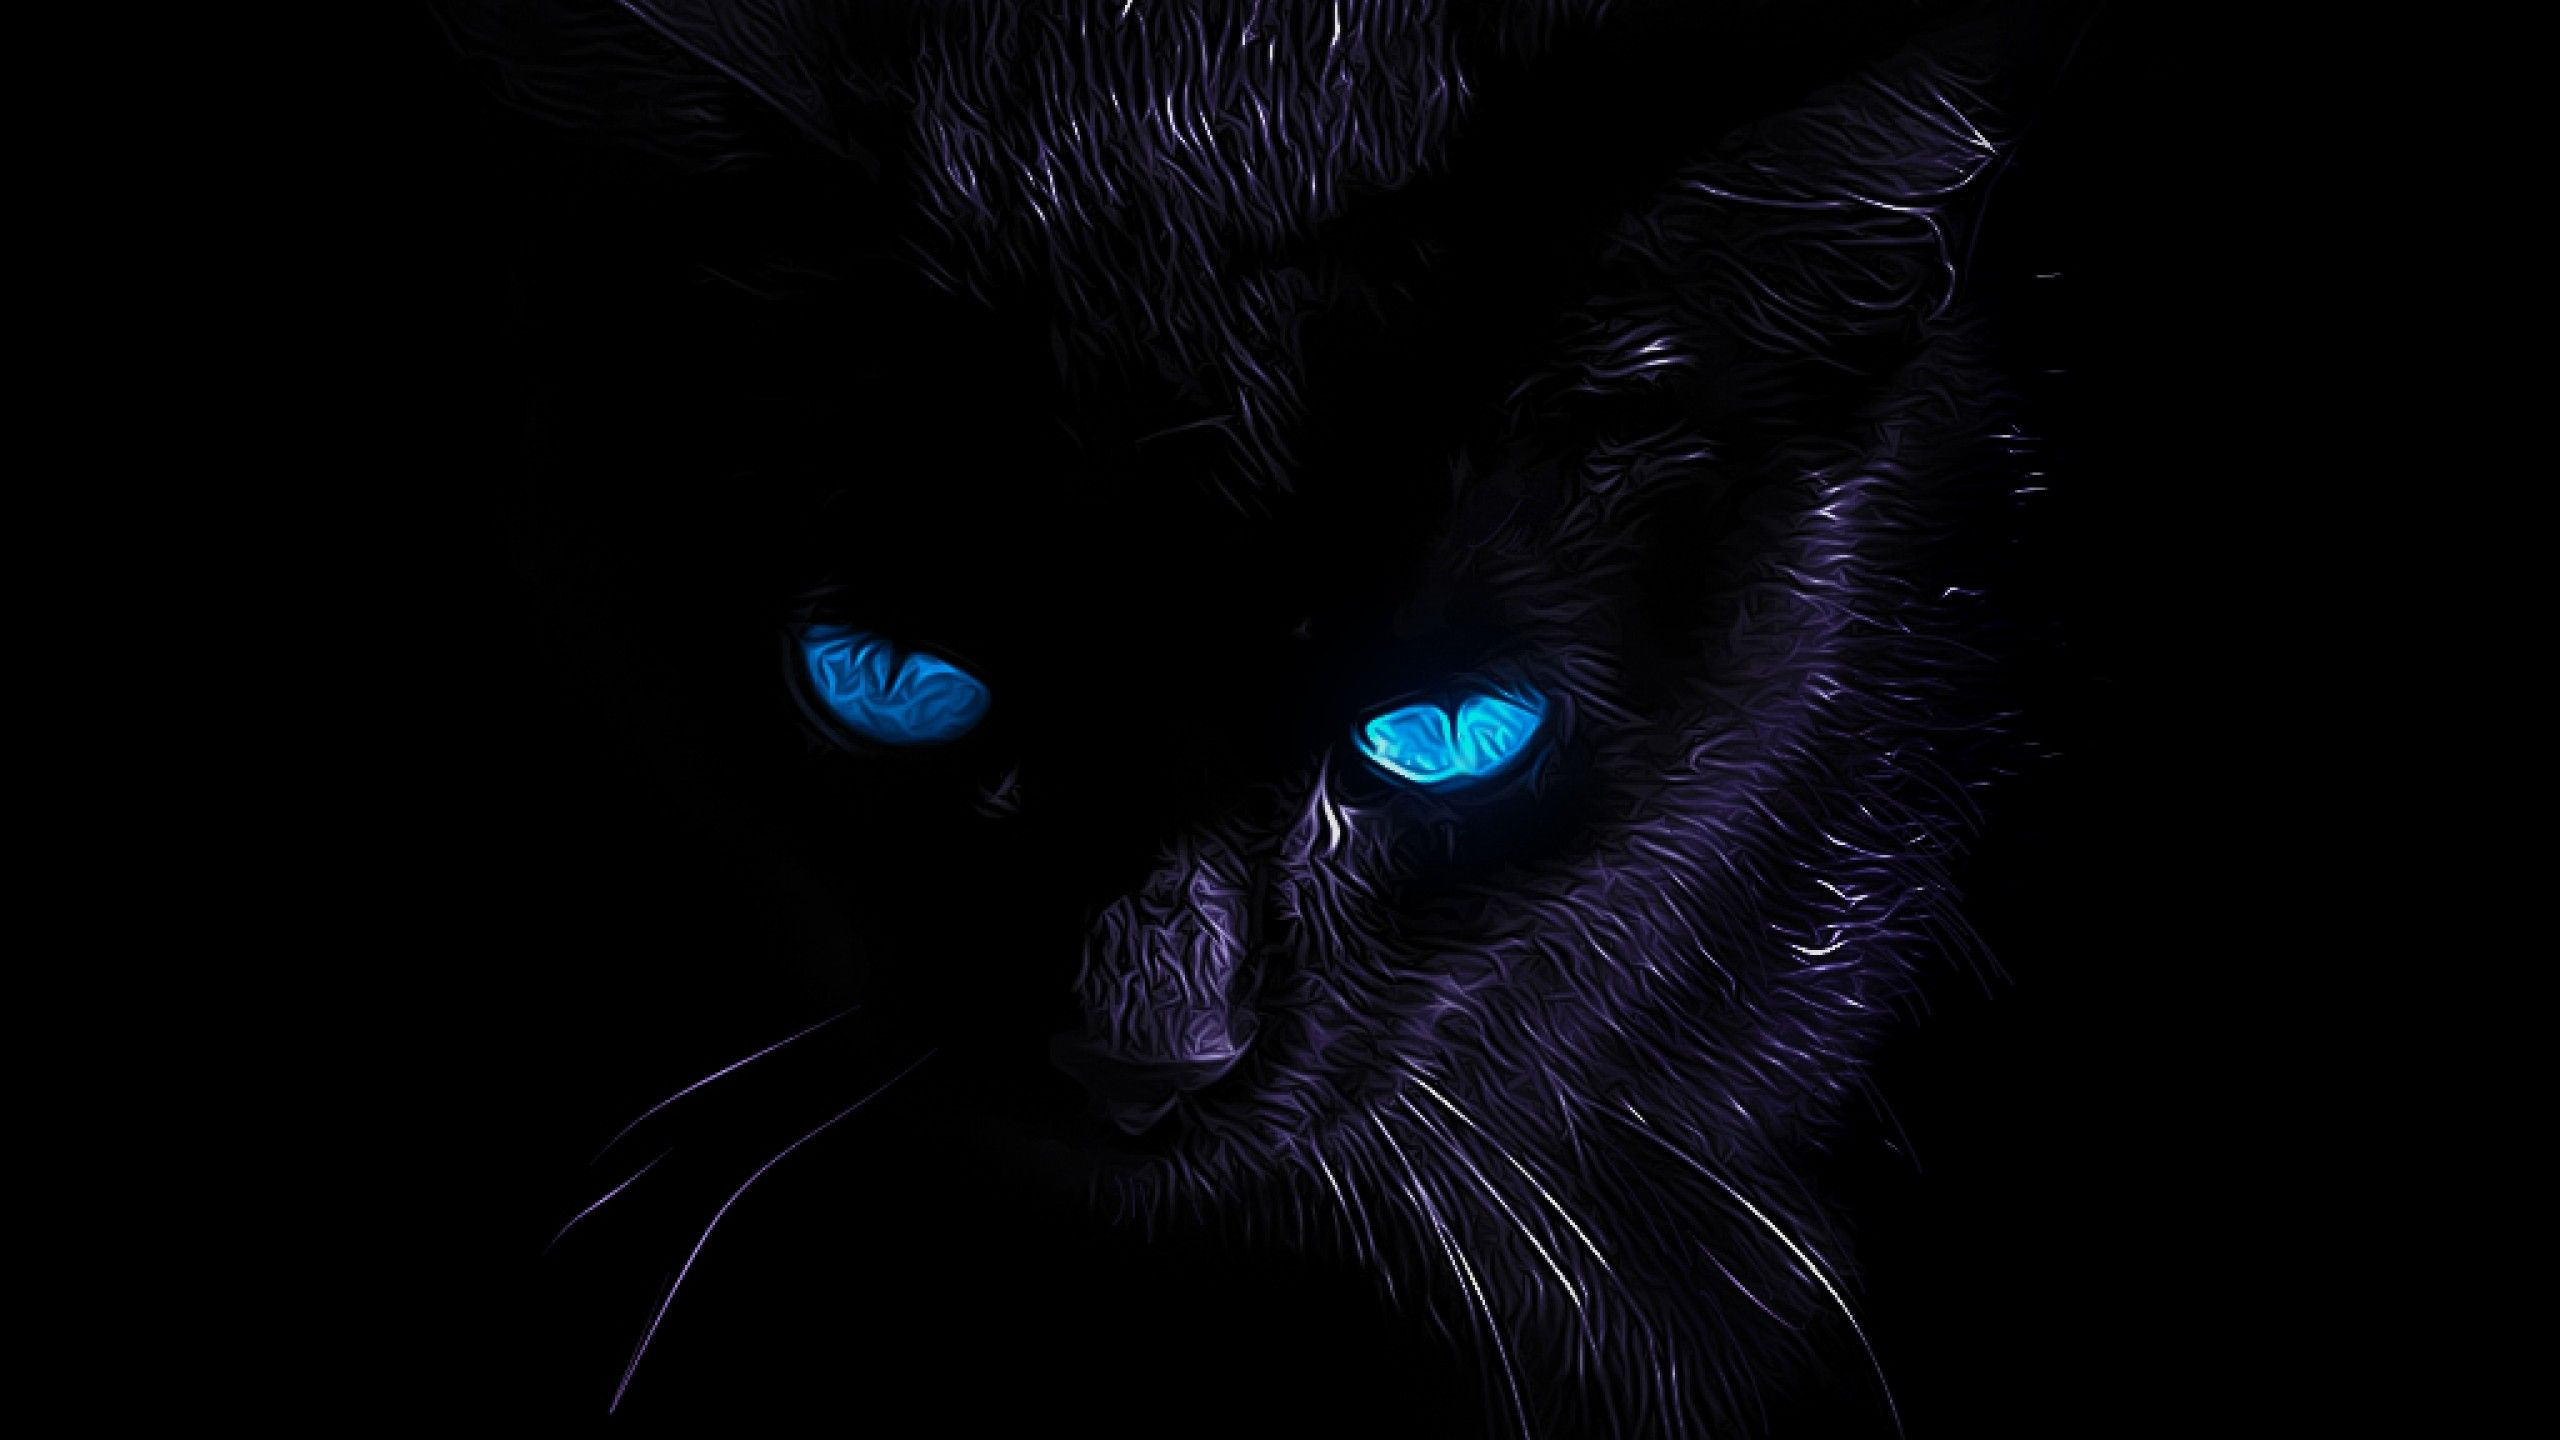 Black Cat Wallpaper Hd Blue Eyes Awesome Wallpaper Cat Wallpapers